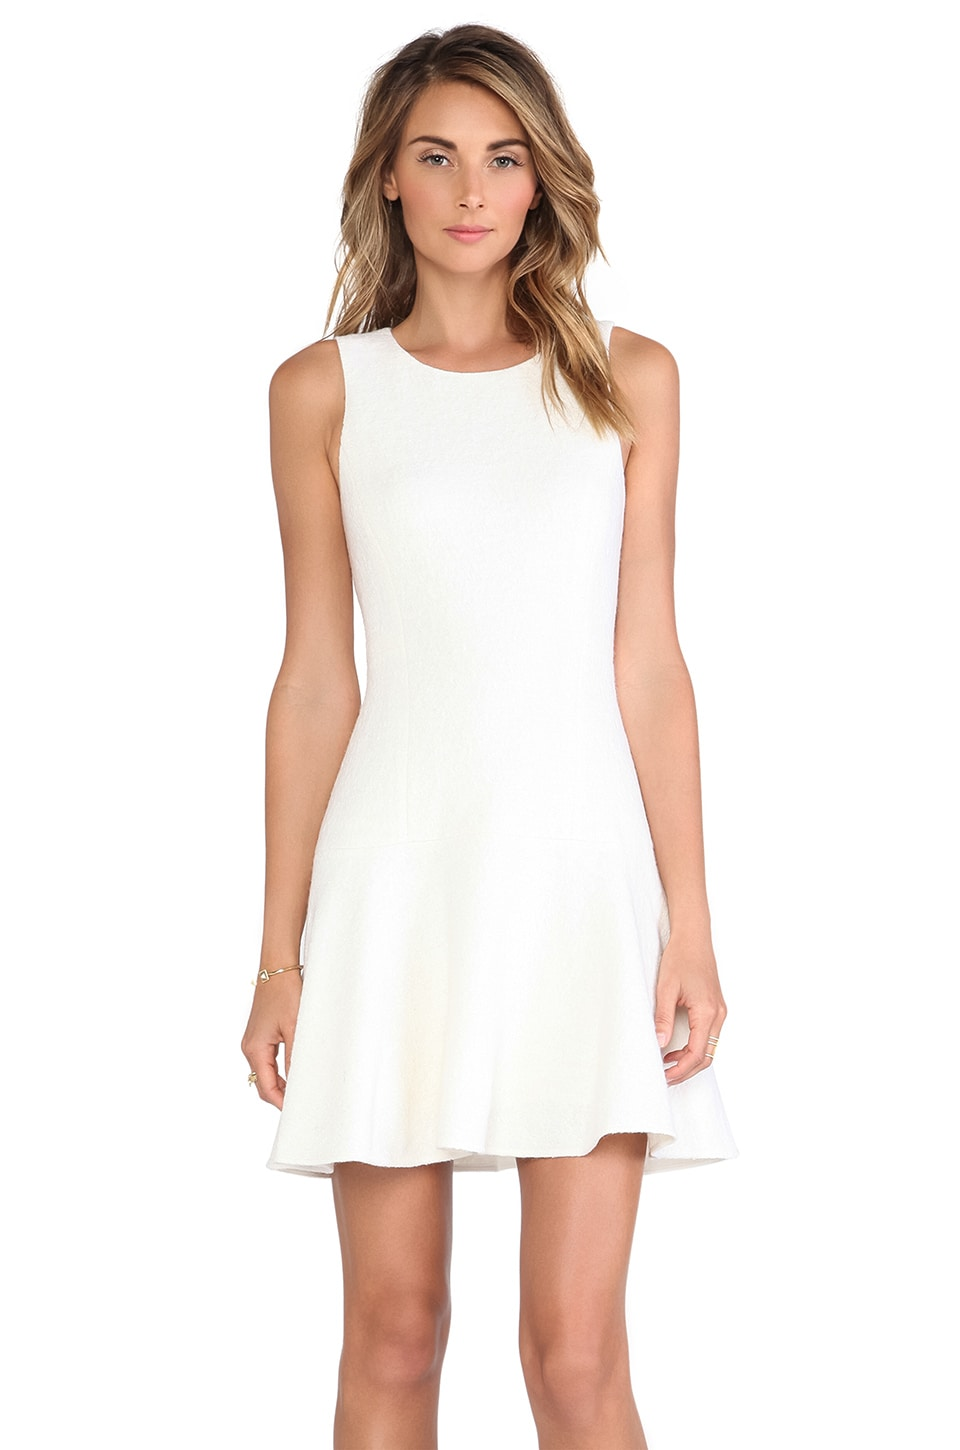 Tibi Kai Flirty Dress in Ivory